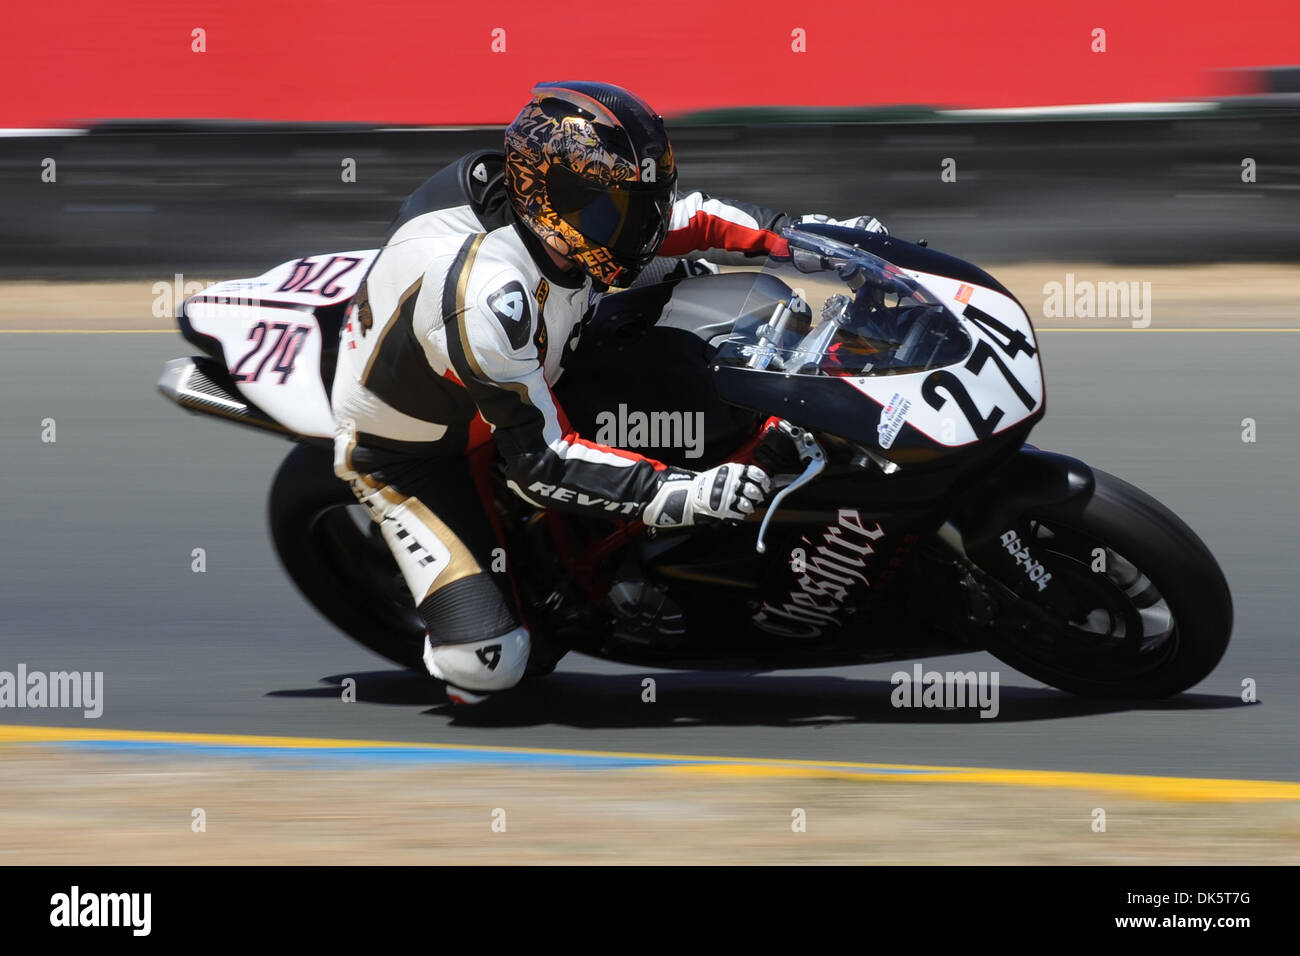 May 13, 2011 - Sonoma, California, United States of America - Brian Brewer (274) rides a Ducati 848 during AMA Pro SuperSport practice at the West Coast Moto Jam at Infineon Raceway. (Credit Image: © Matt Cohen/Southcreek Global/ZUMAPRESS.com) - Stock Image